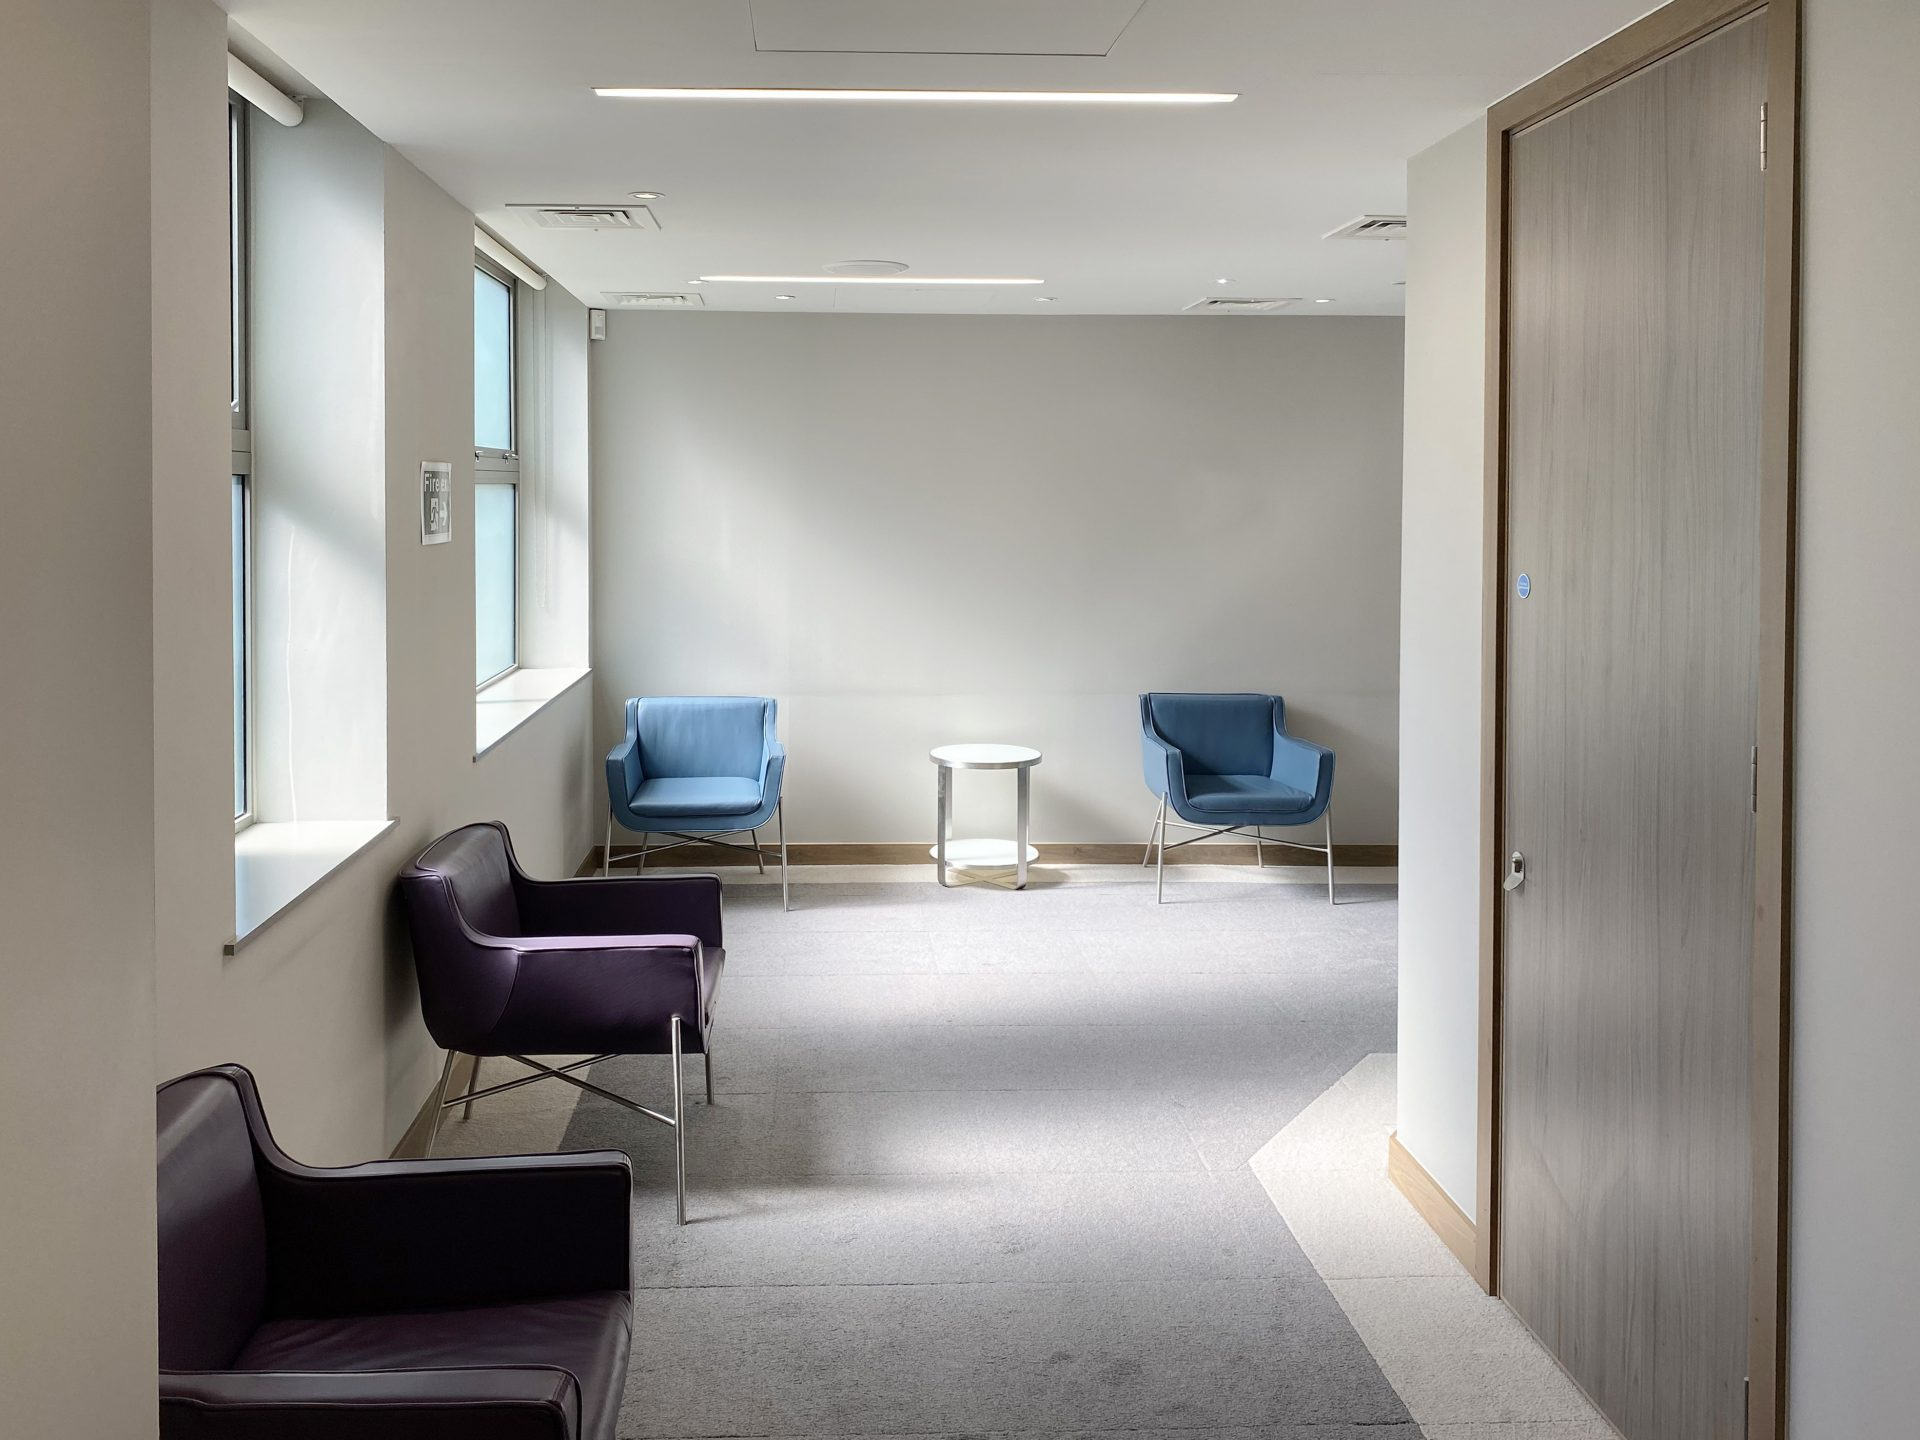 healthcare architects beverley, architects hull, architecture beverley